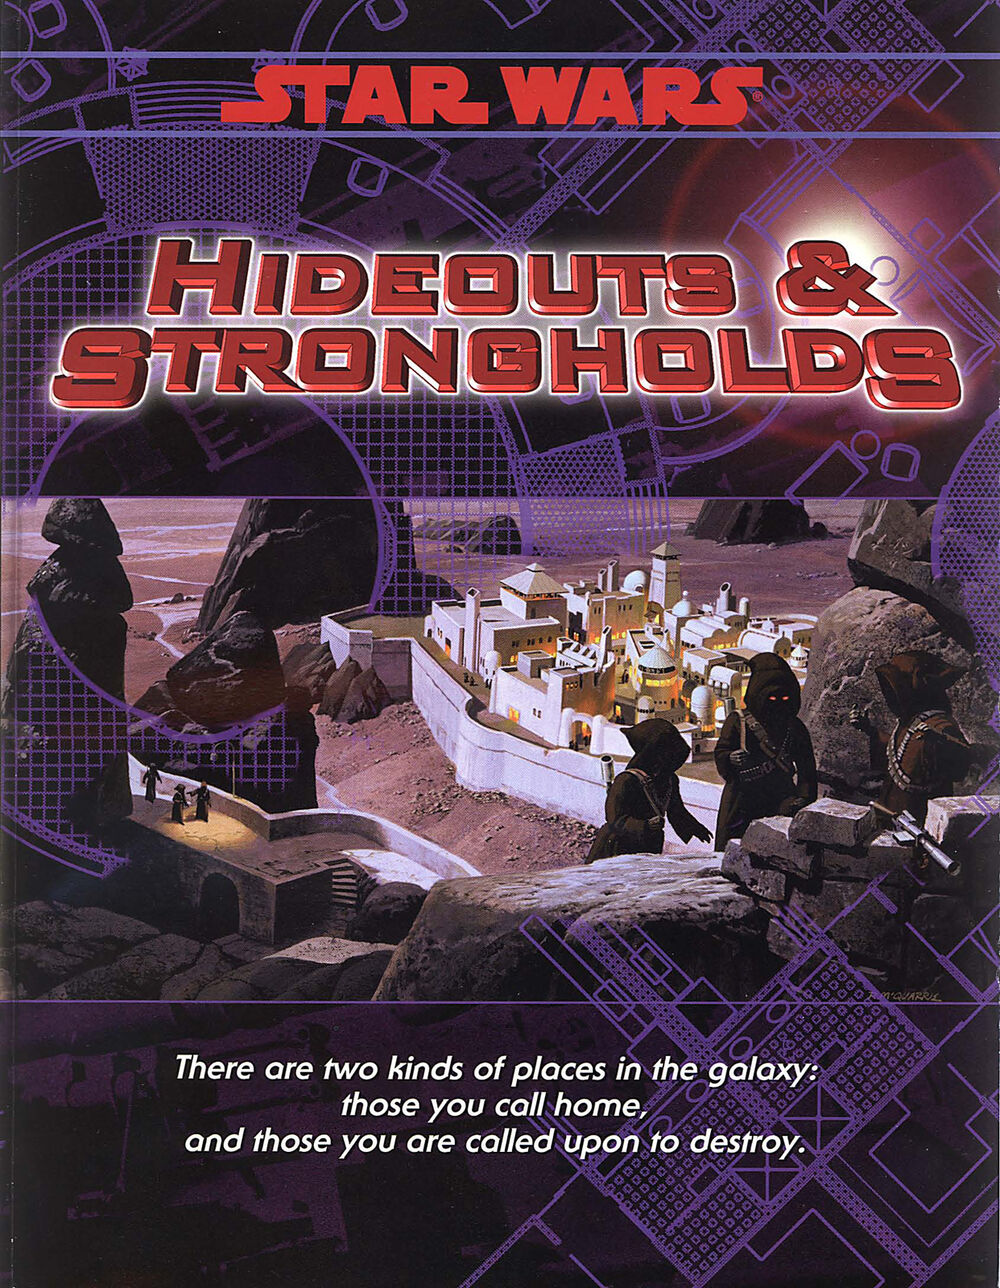 Star Wars: Hideouts & Strongholds